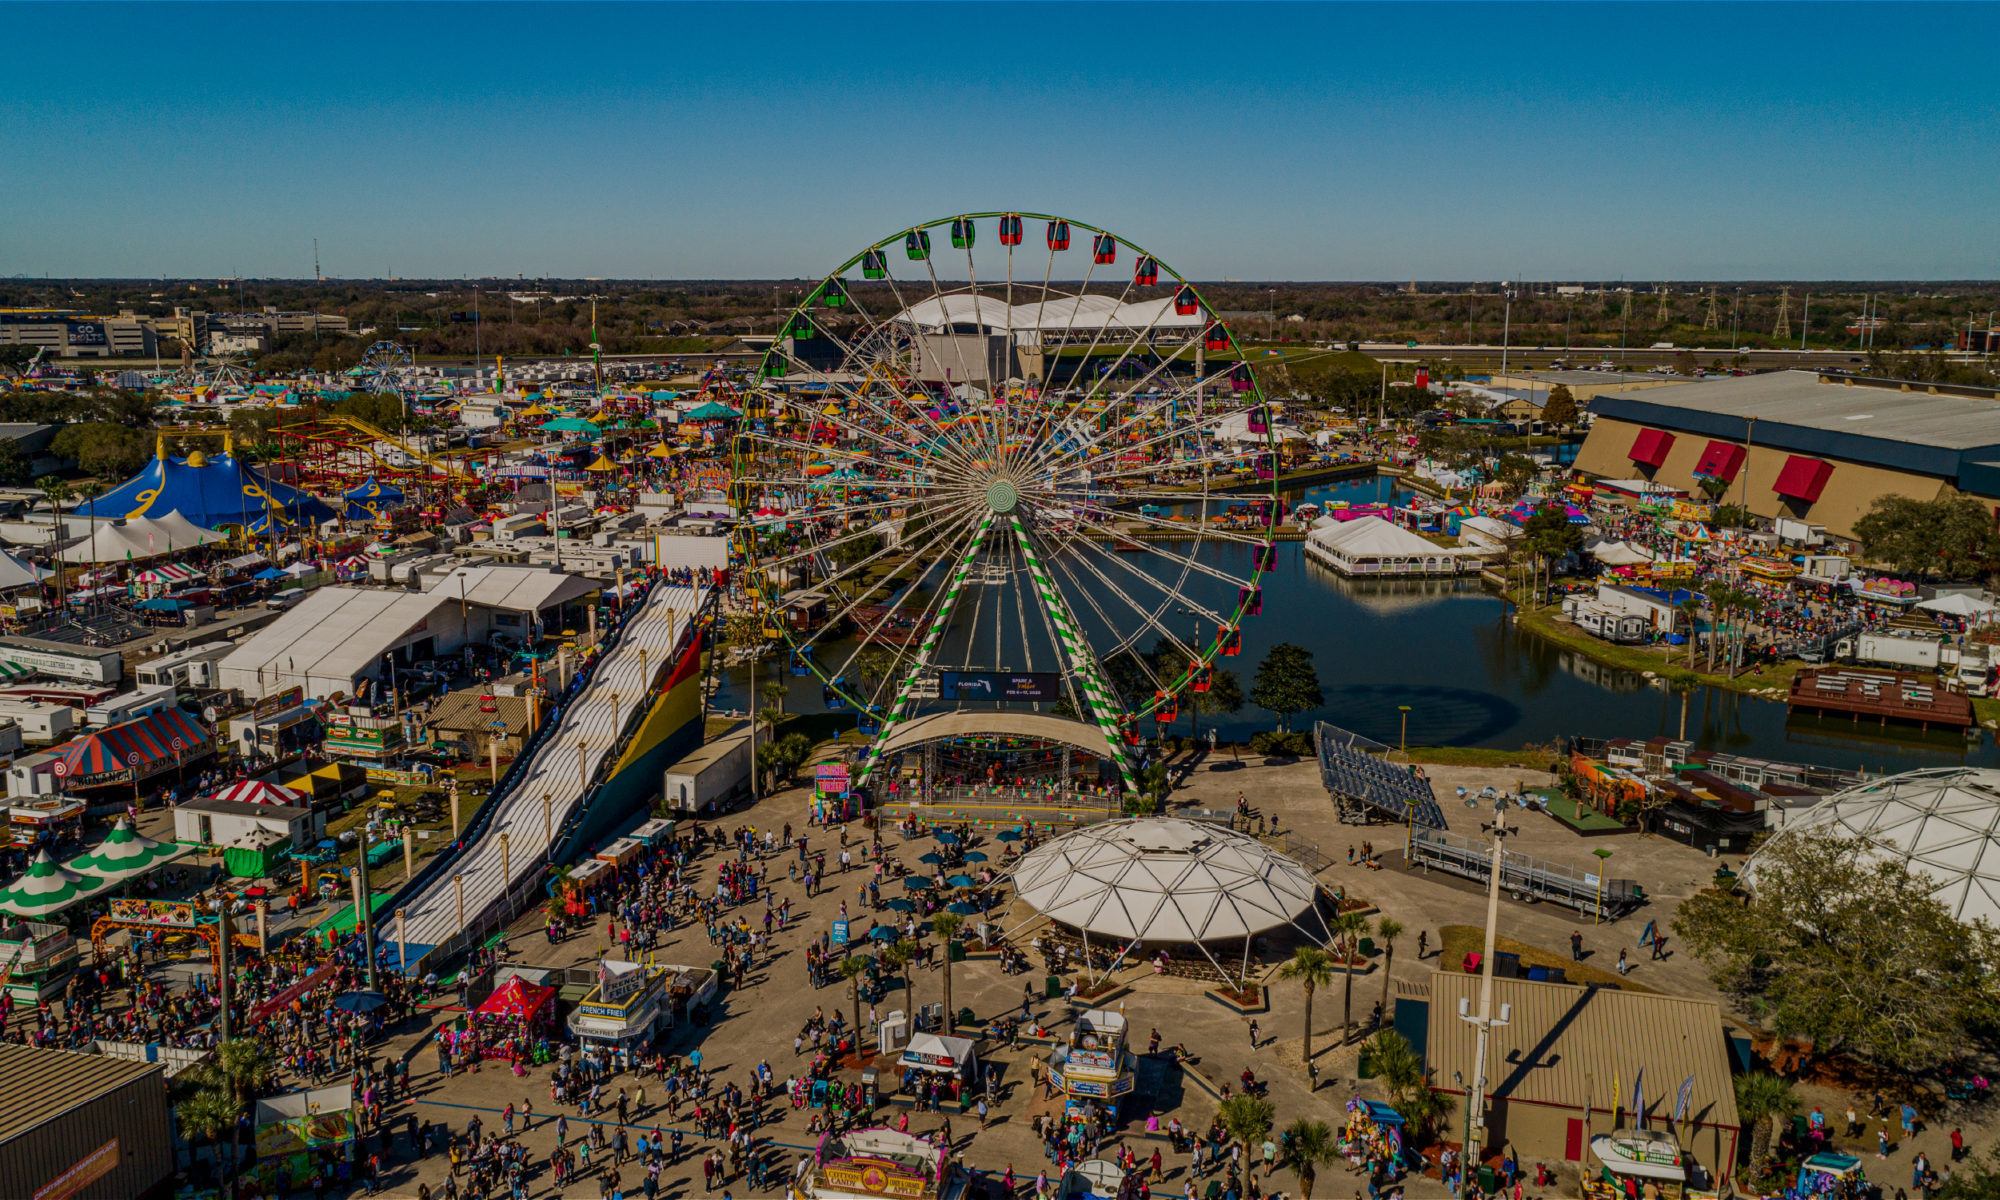 Aerial Photo of Fair